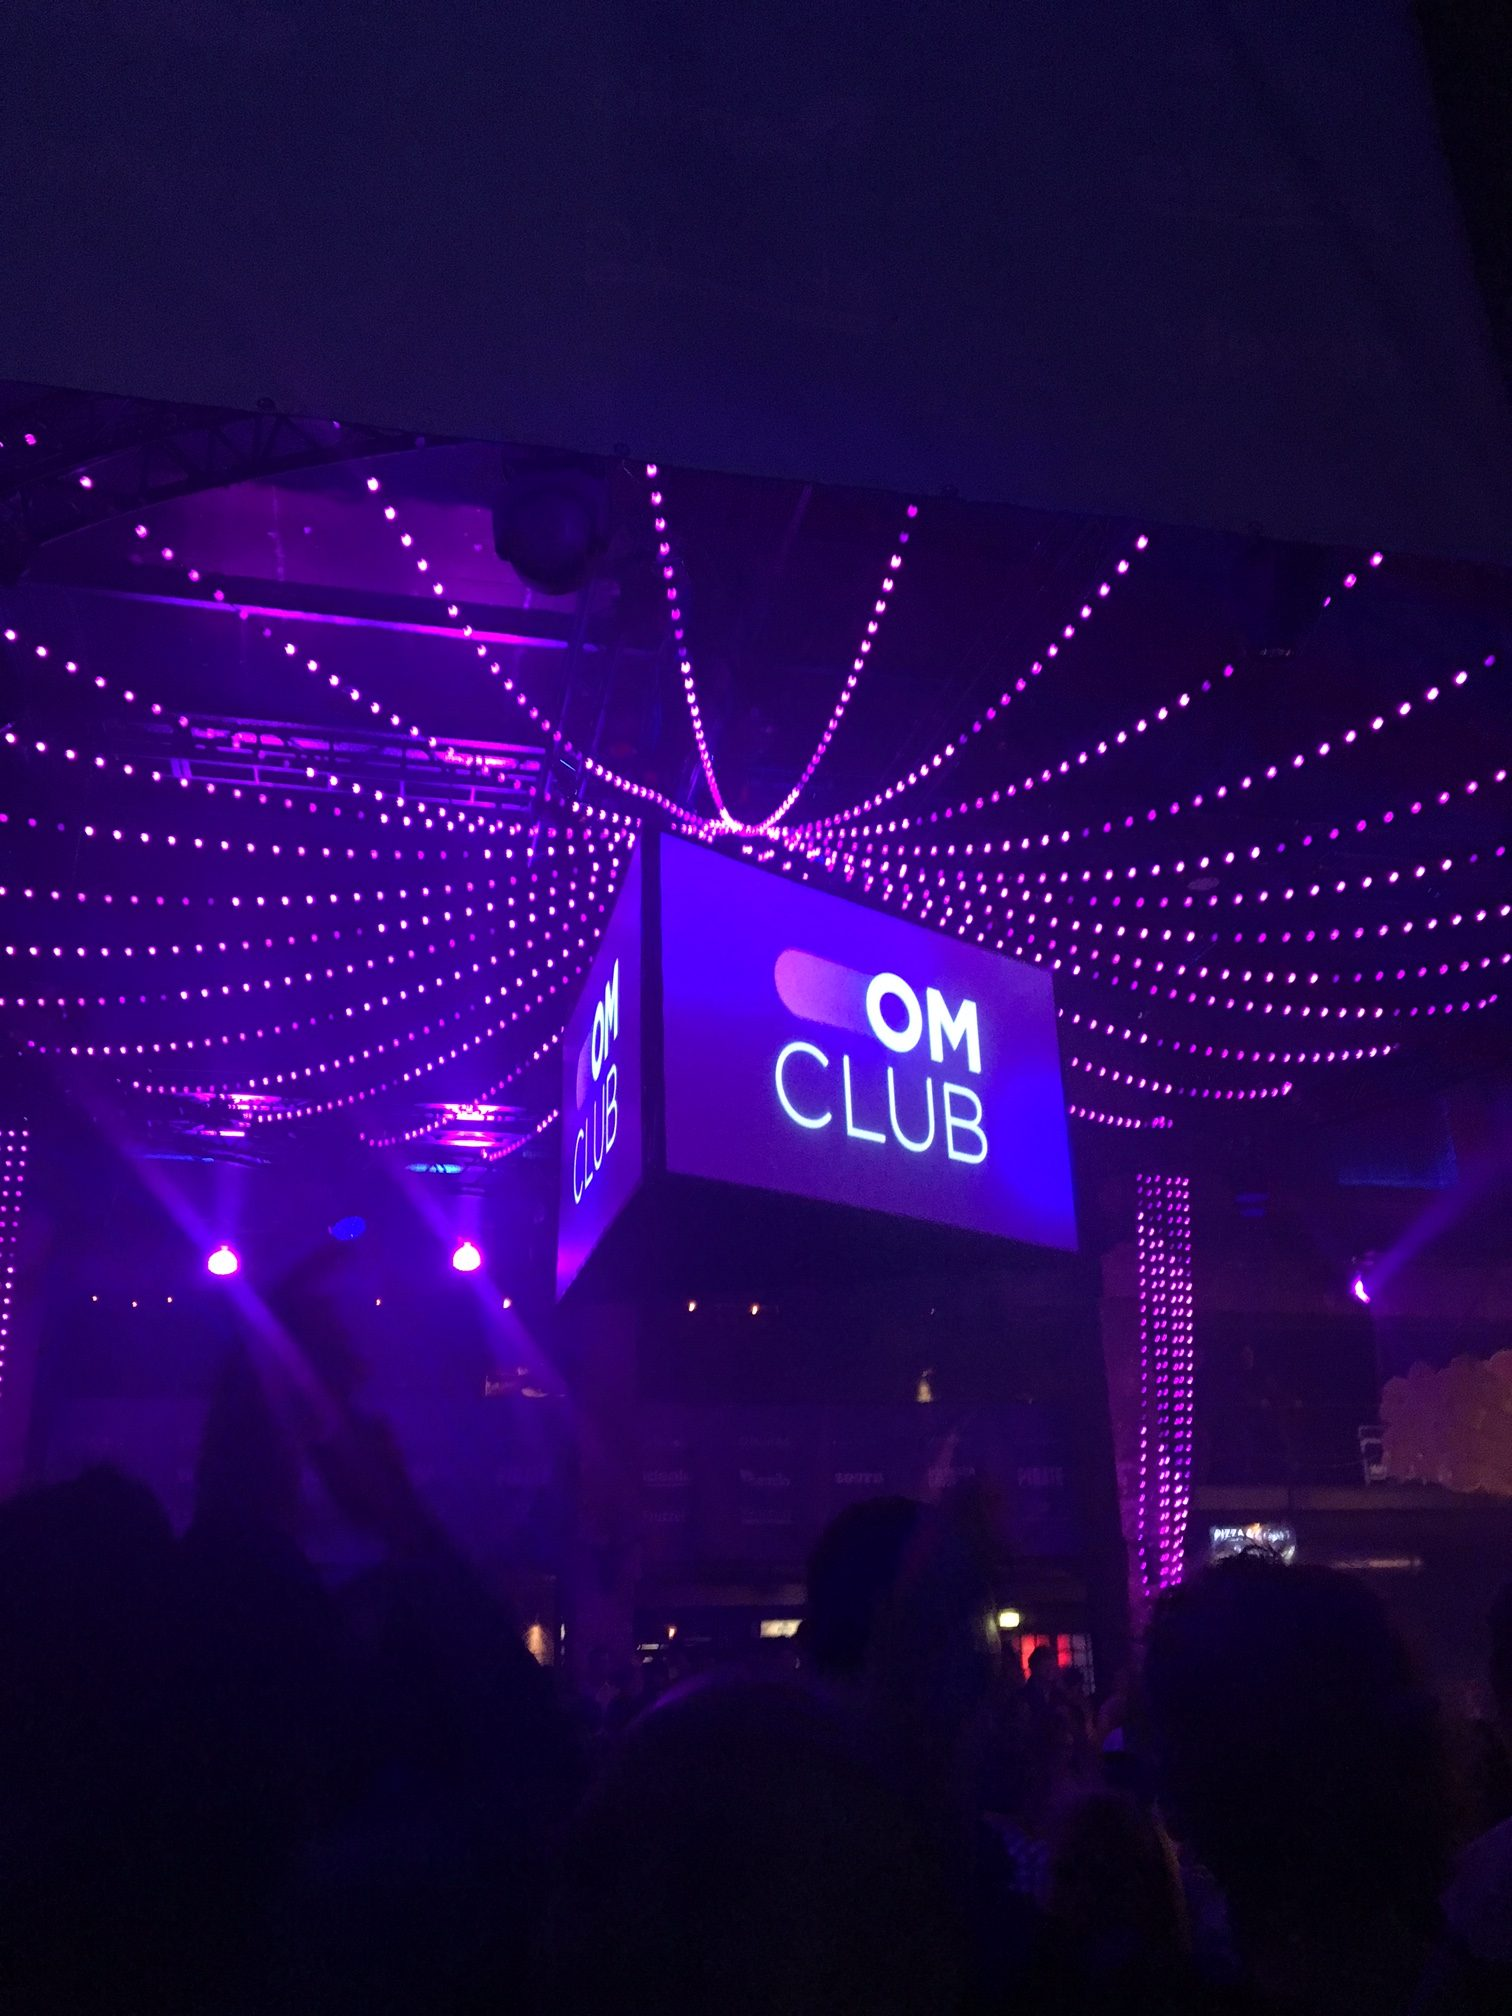 OM Club DMEXCO party